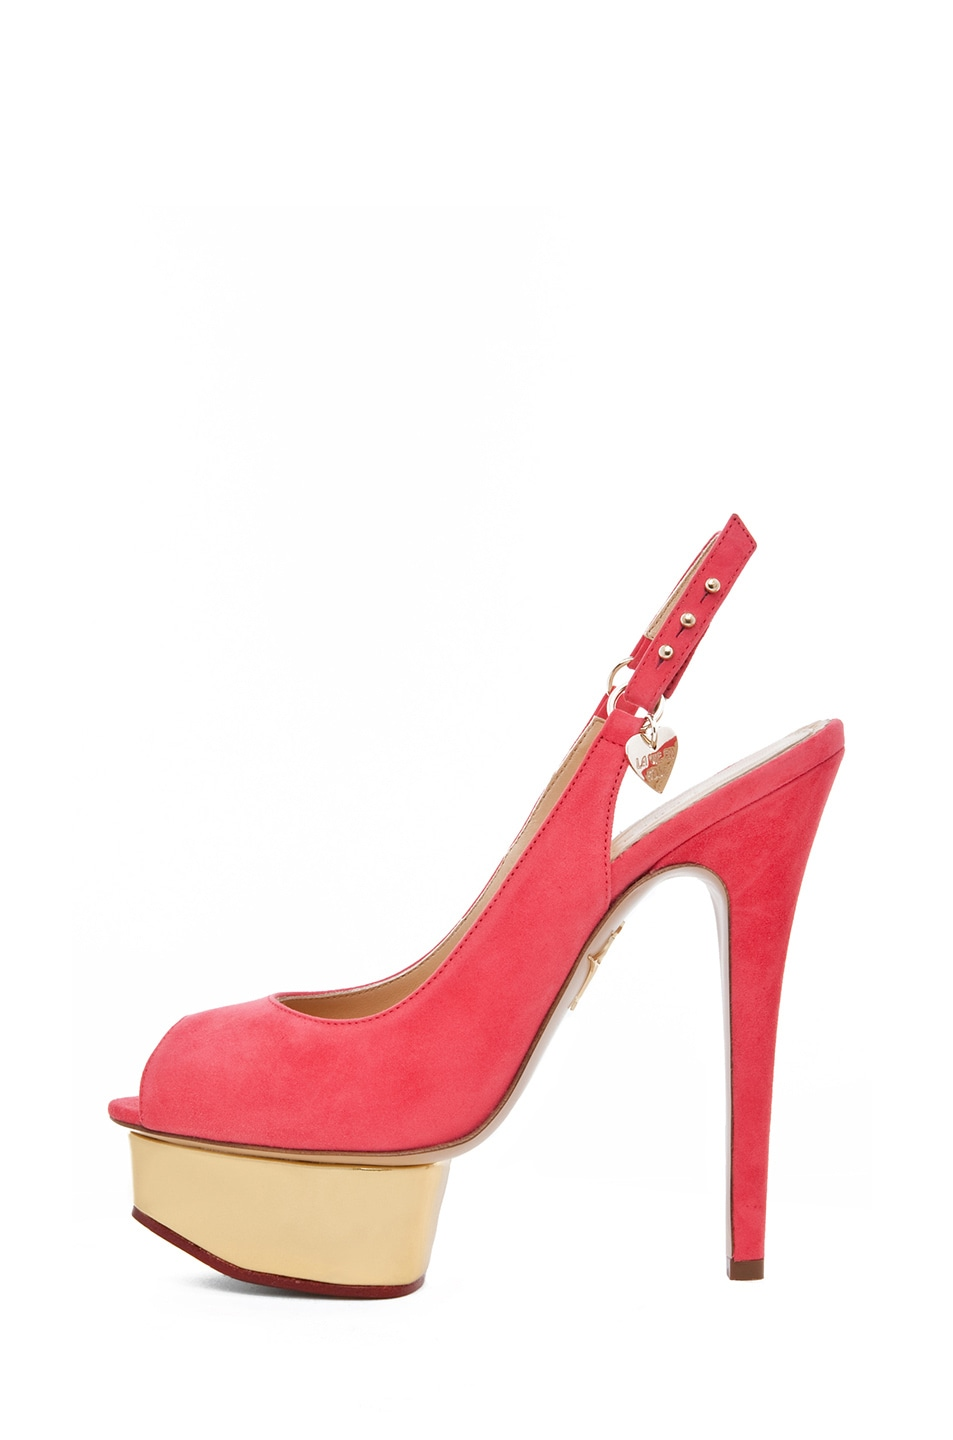 Image 1 of Charlotte Olympia Bon Bon Sling Back Heel in Watermelon